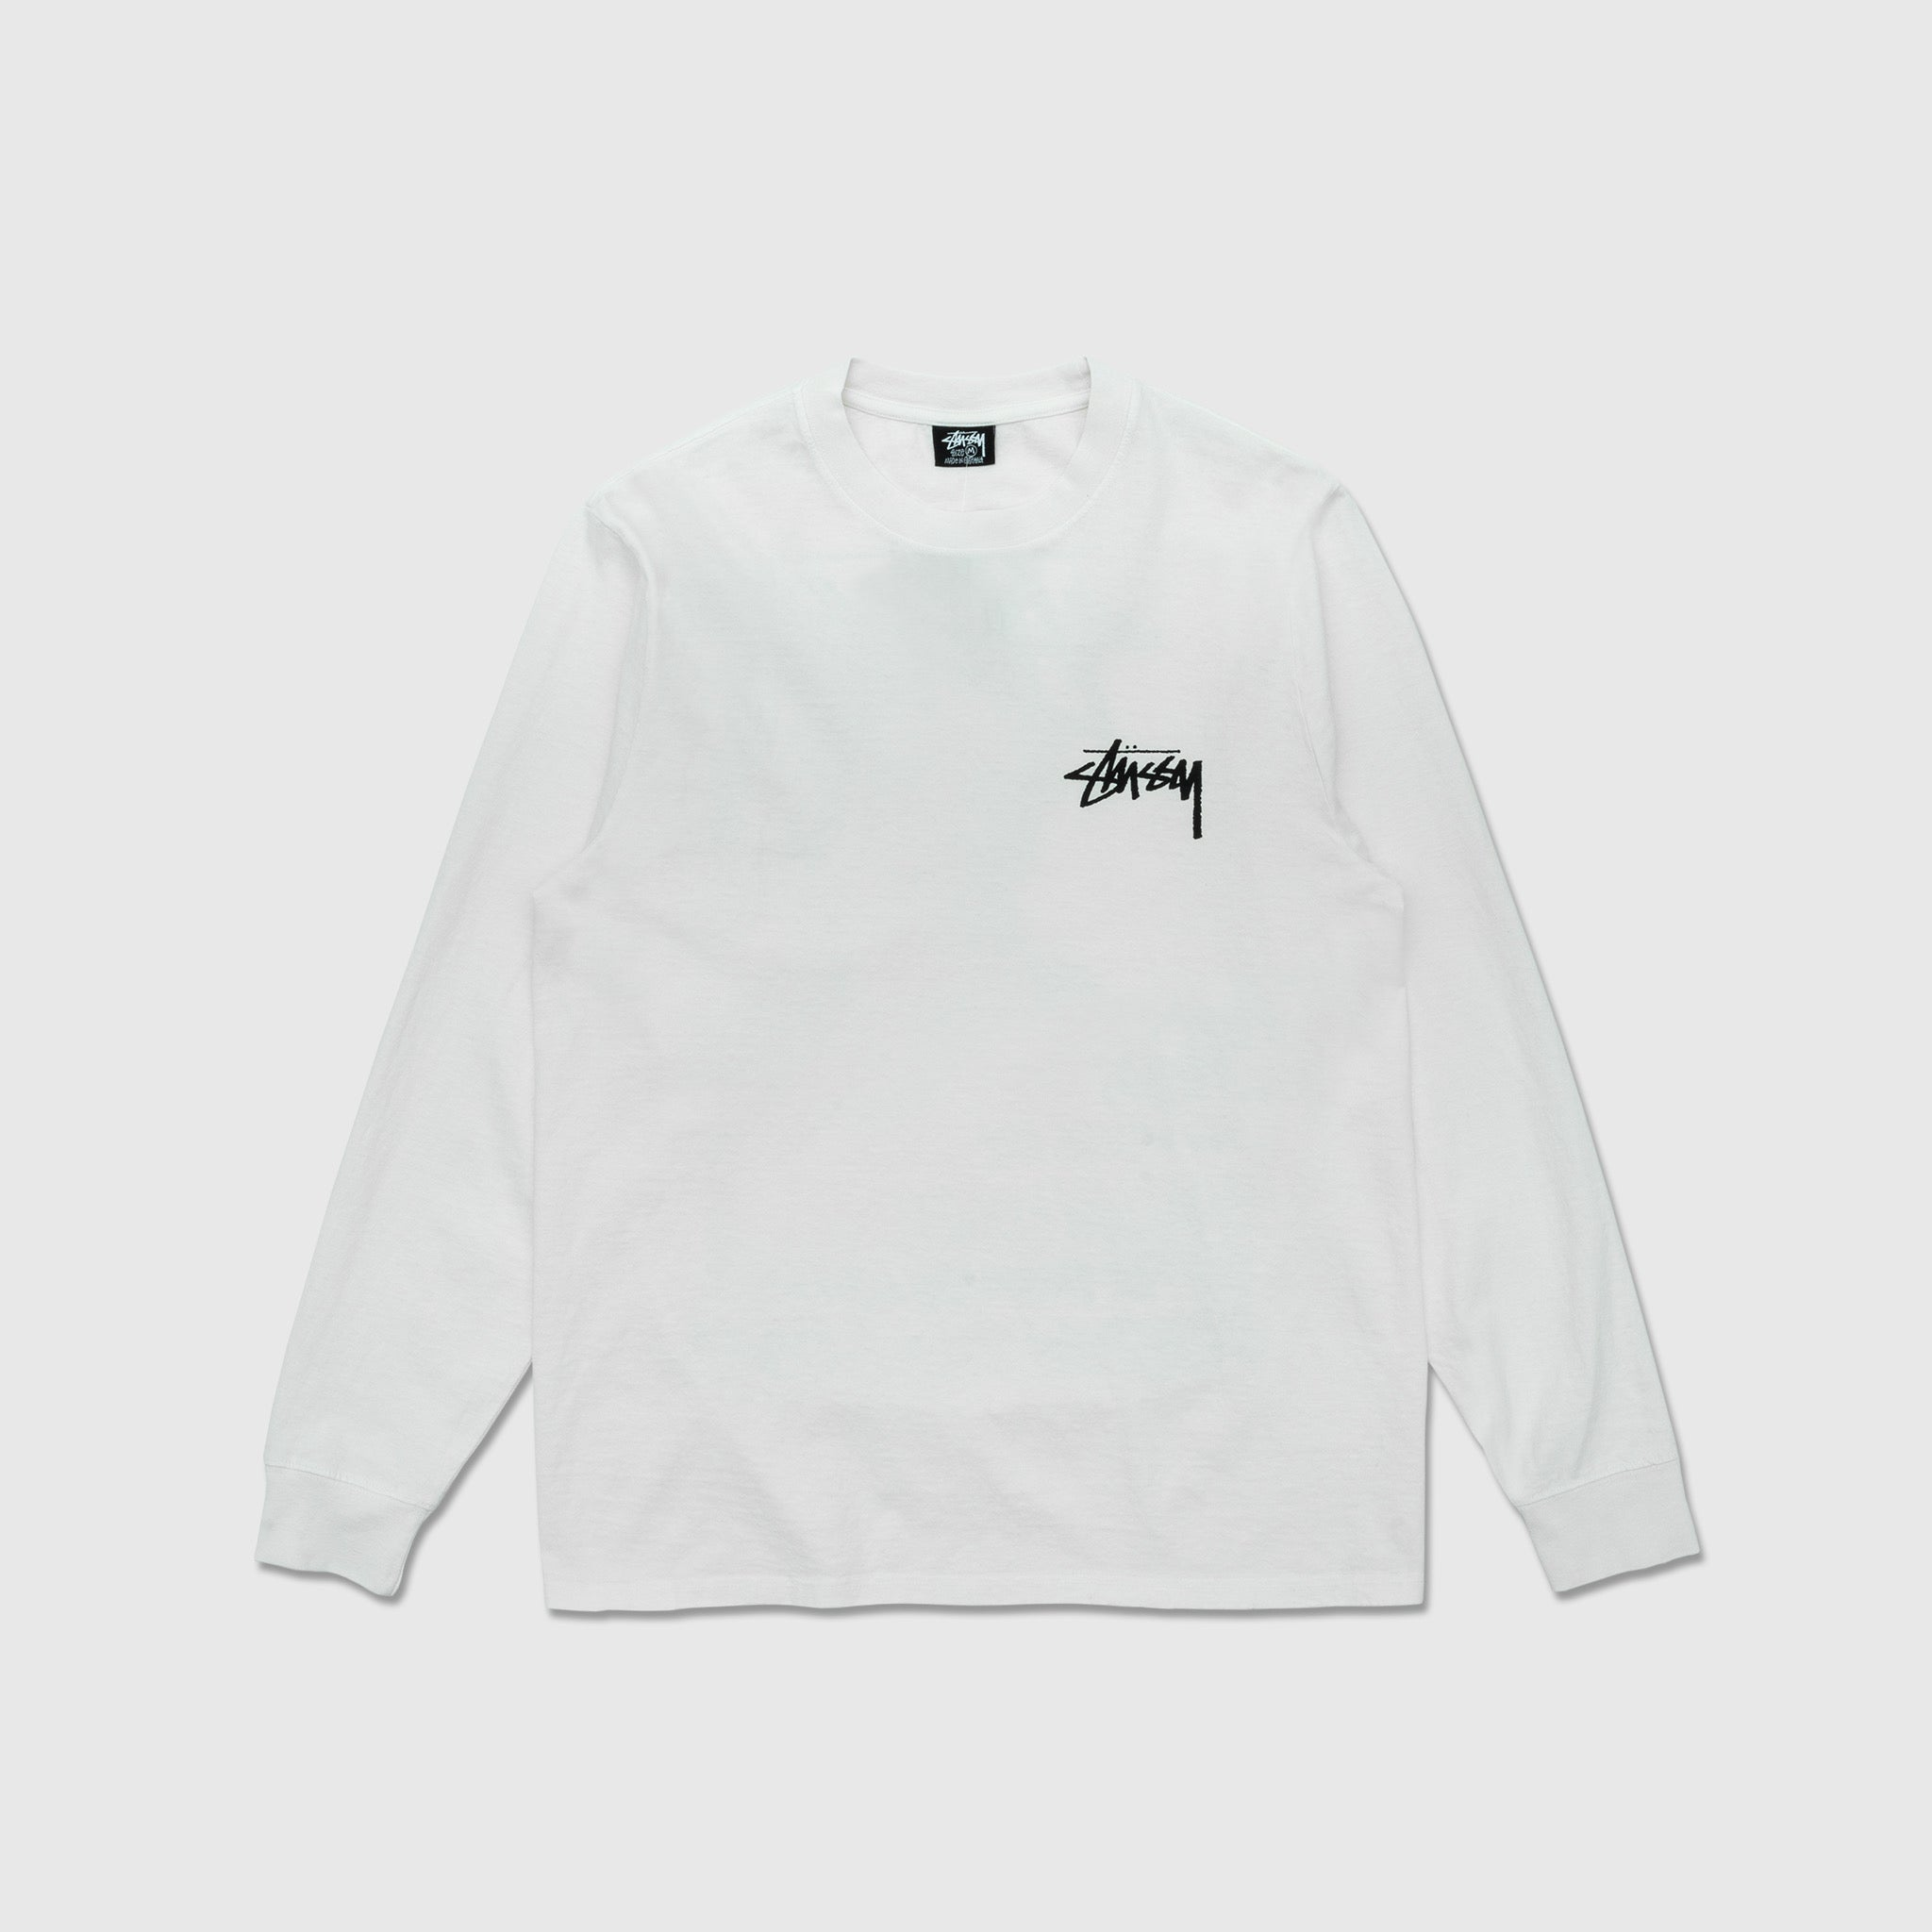 STUSSY SPRING WEEDS PIGMENT DYED L/S T-SHIRT